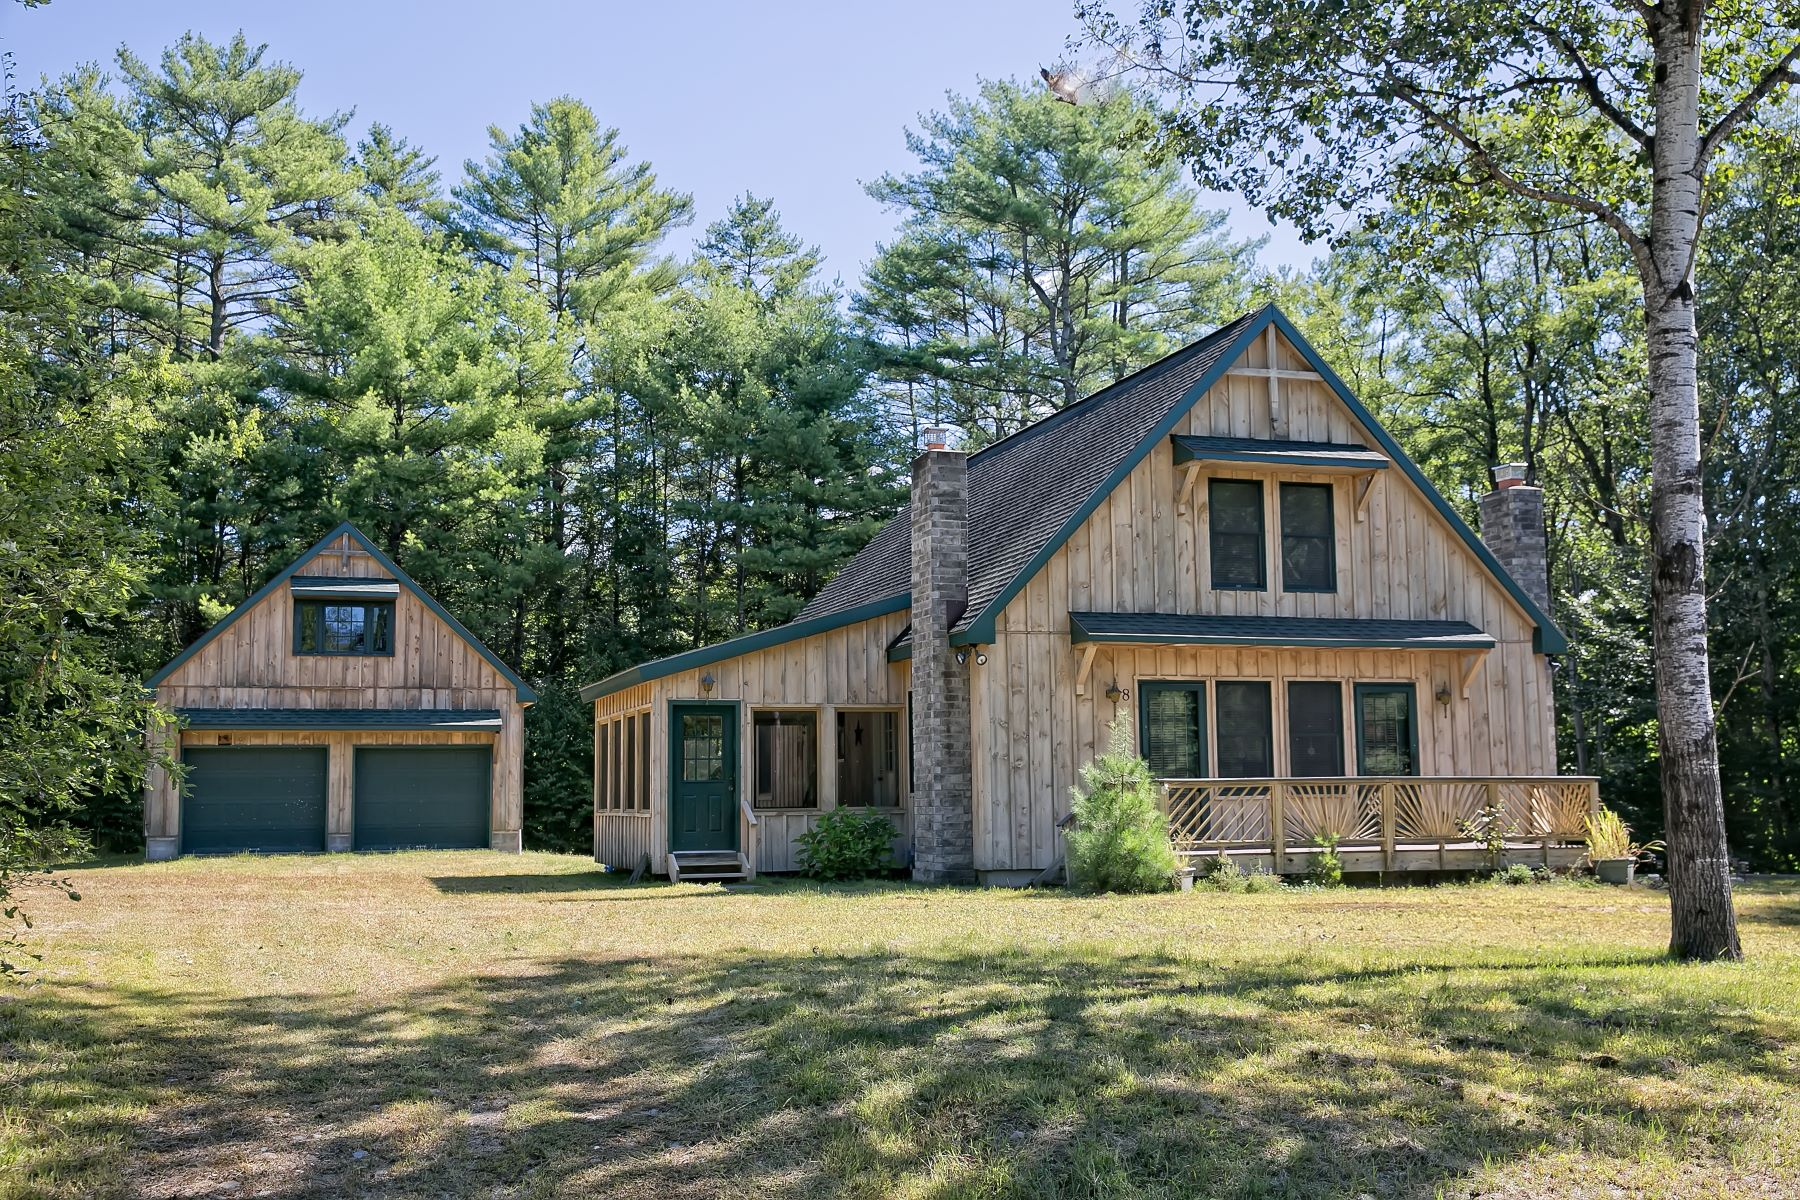 Single Family Homes for Sale at Custom Adirondack Chalet 8 Locarno St Lake Luzerne, New York 12846 United States